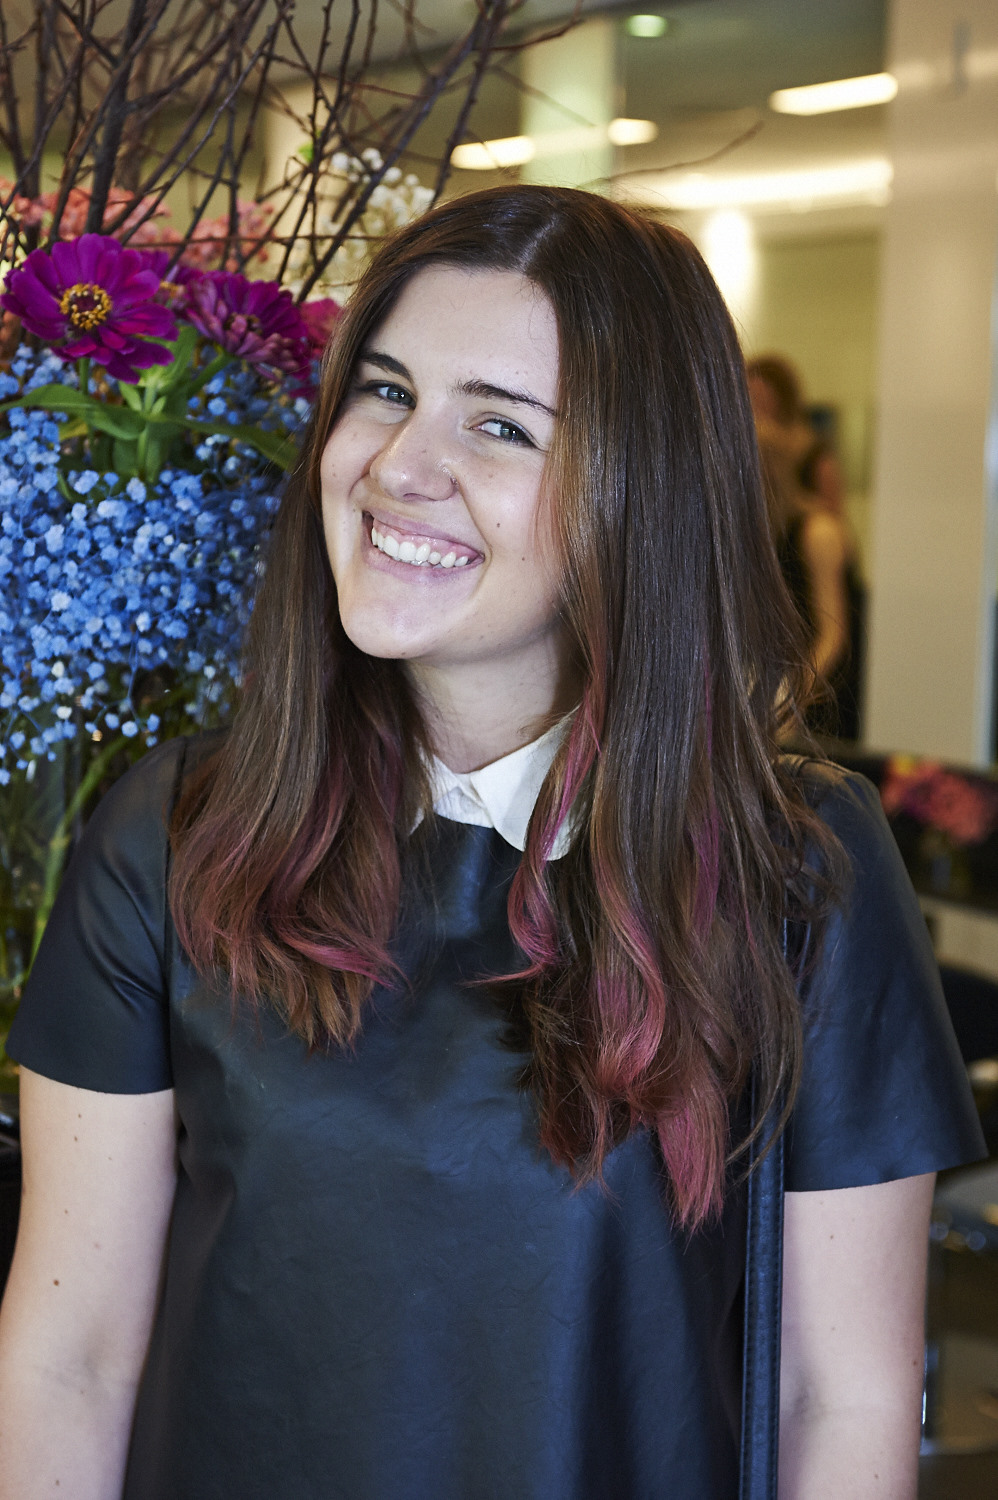 L'Oréal Professionnel Hairchalk launch 2014_Alexandra Whiting COSMO.jpg